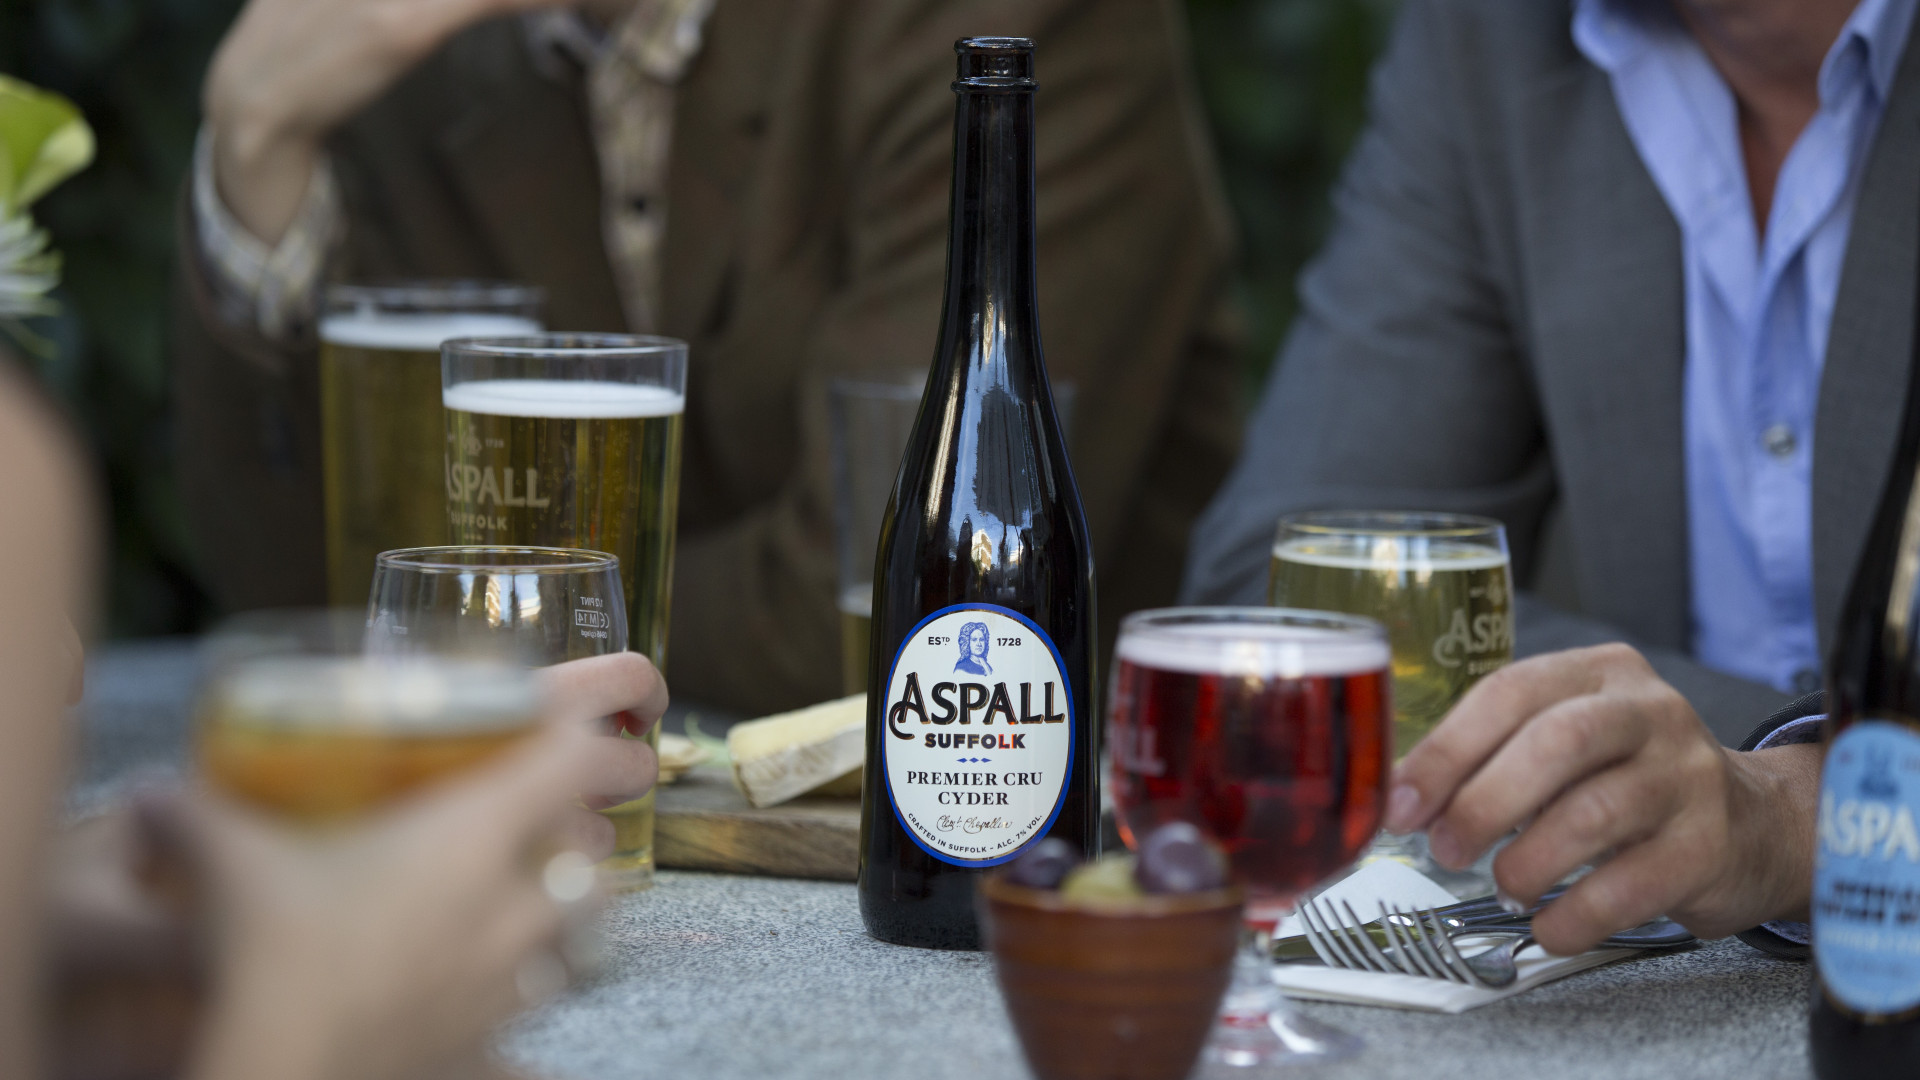 Old-school cider – Aspall